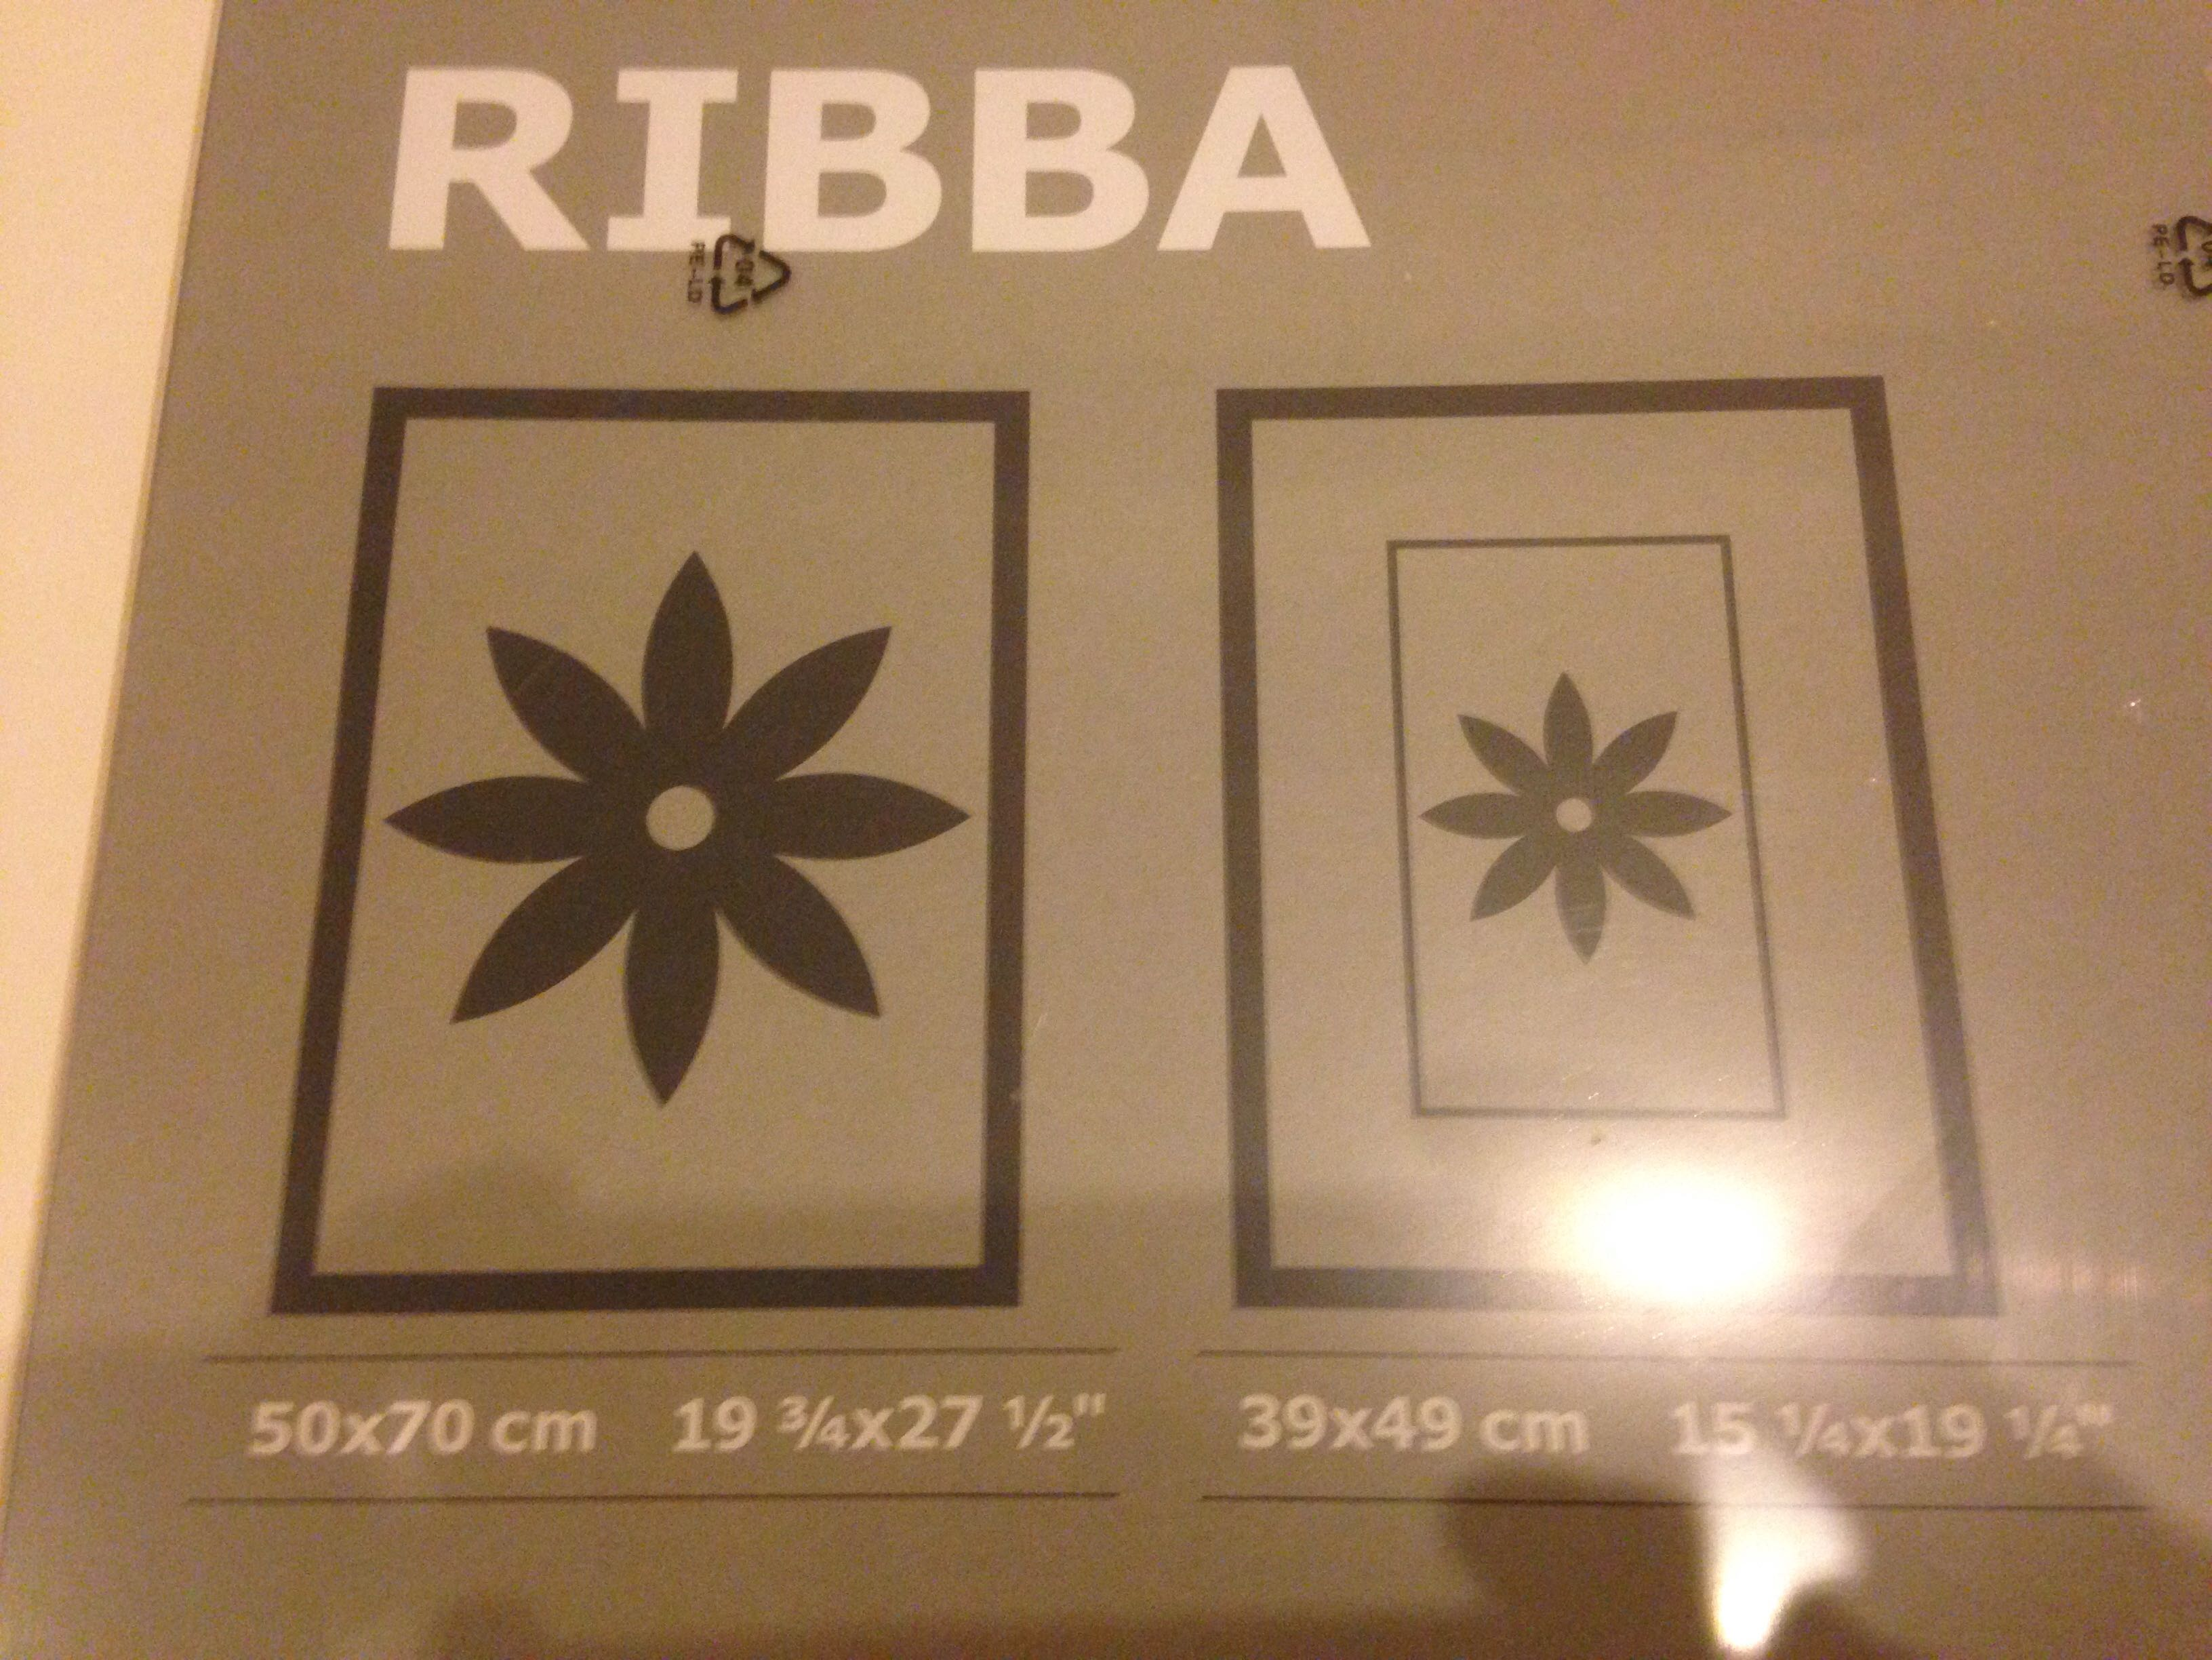 New IKEA Ribba Frame 50x70 Furniture Home Decor Others On Carousell